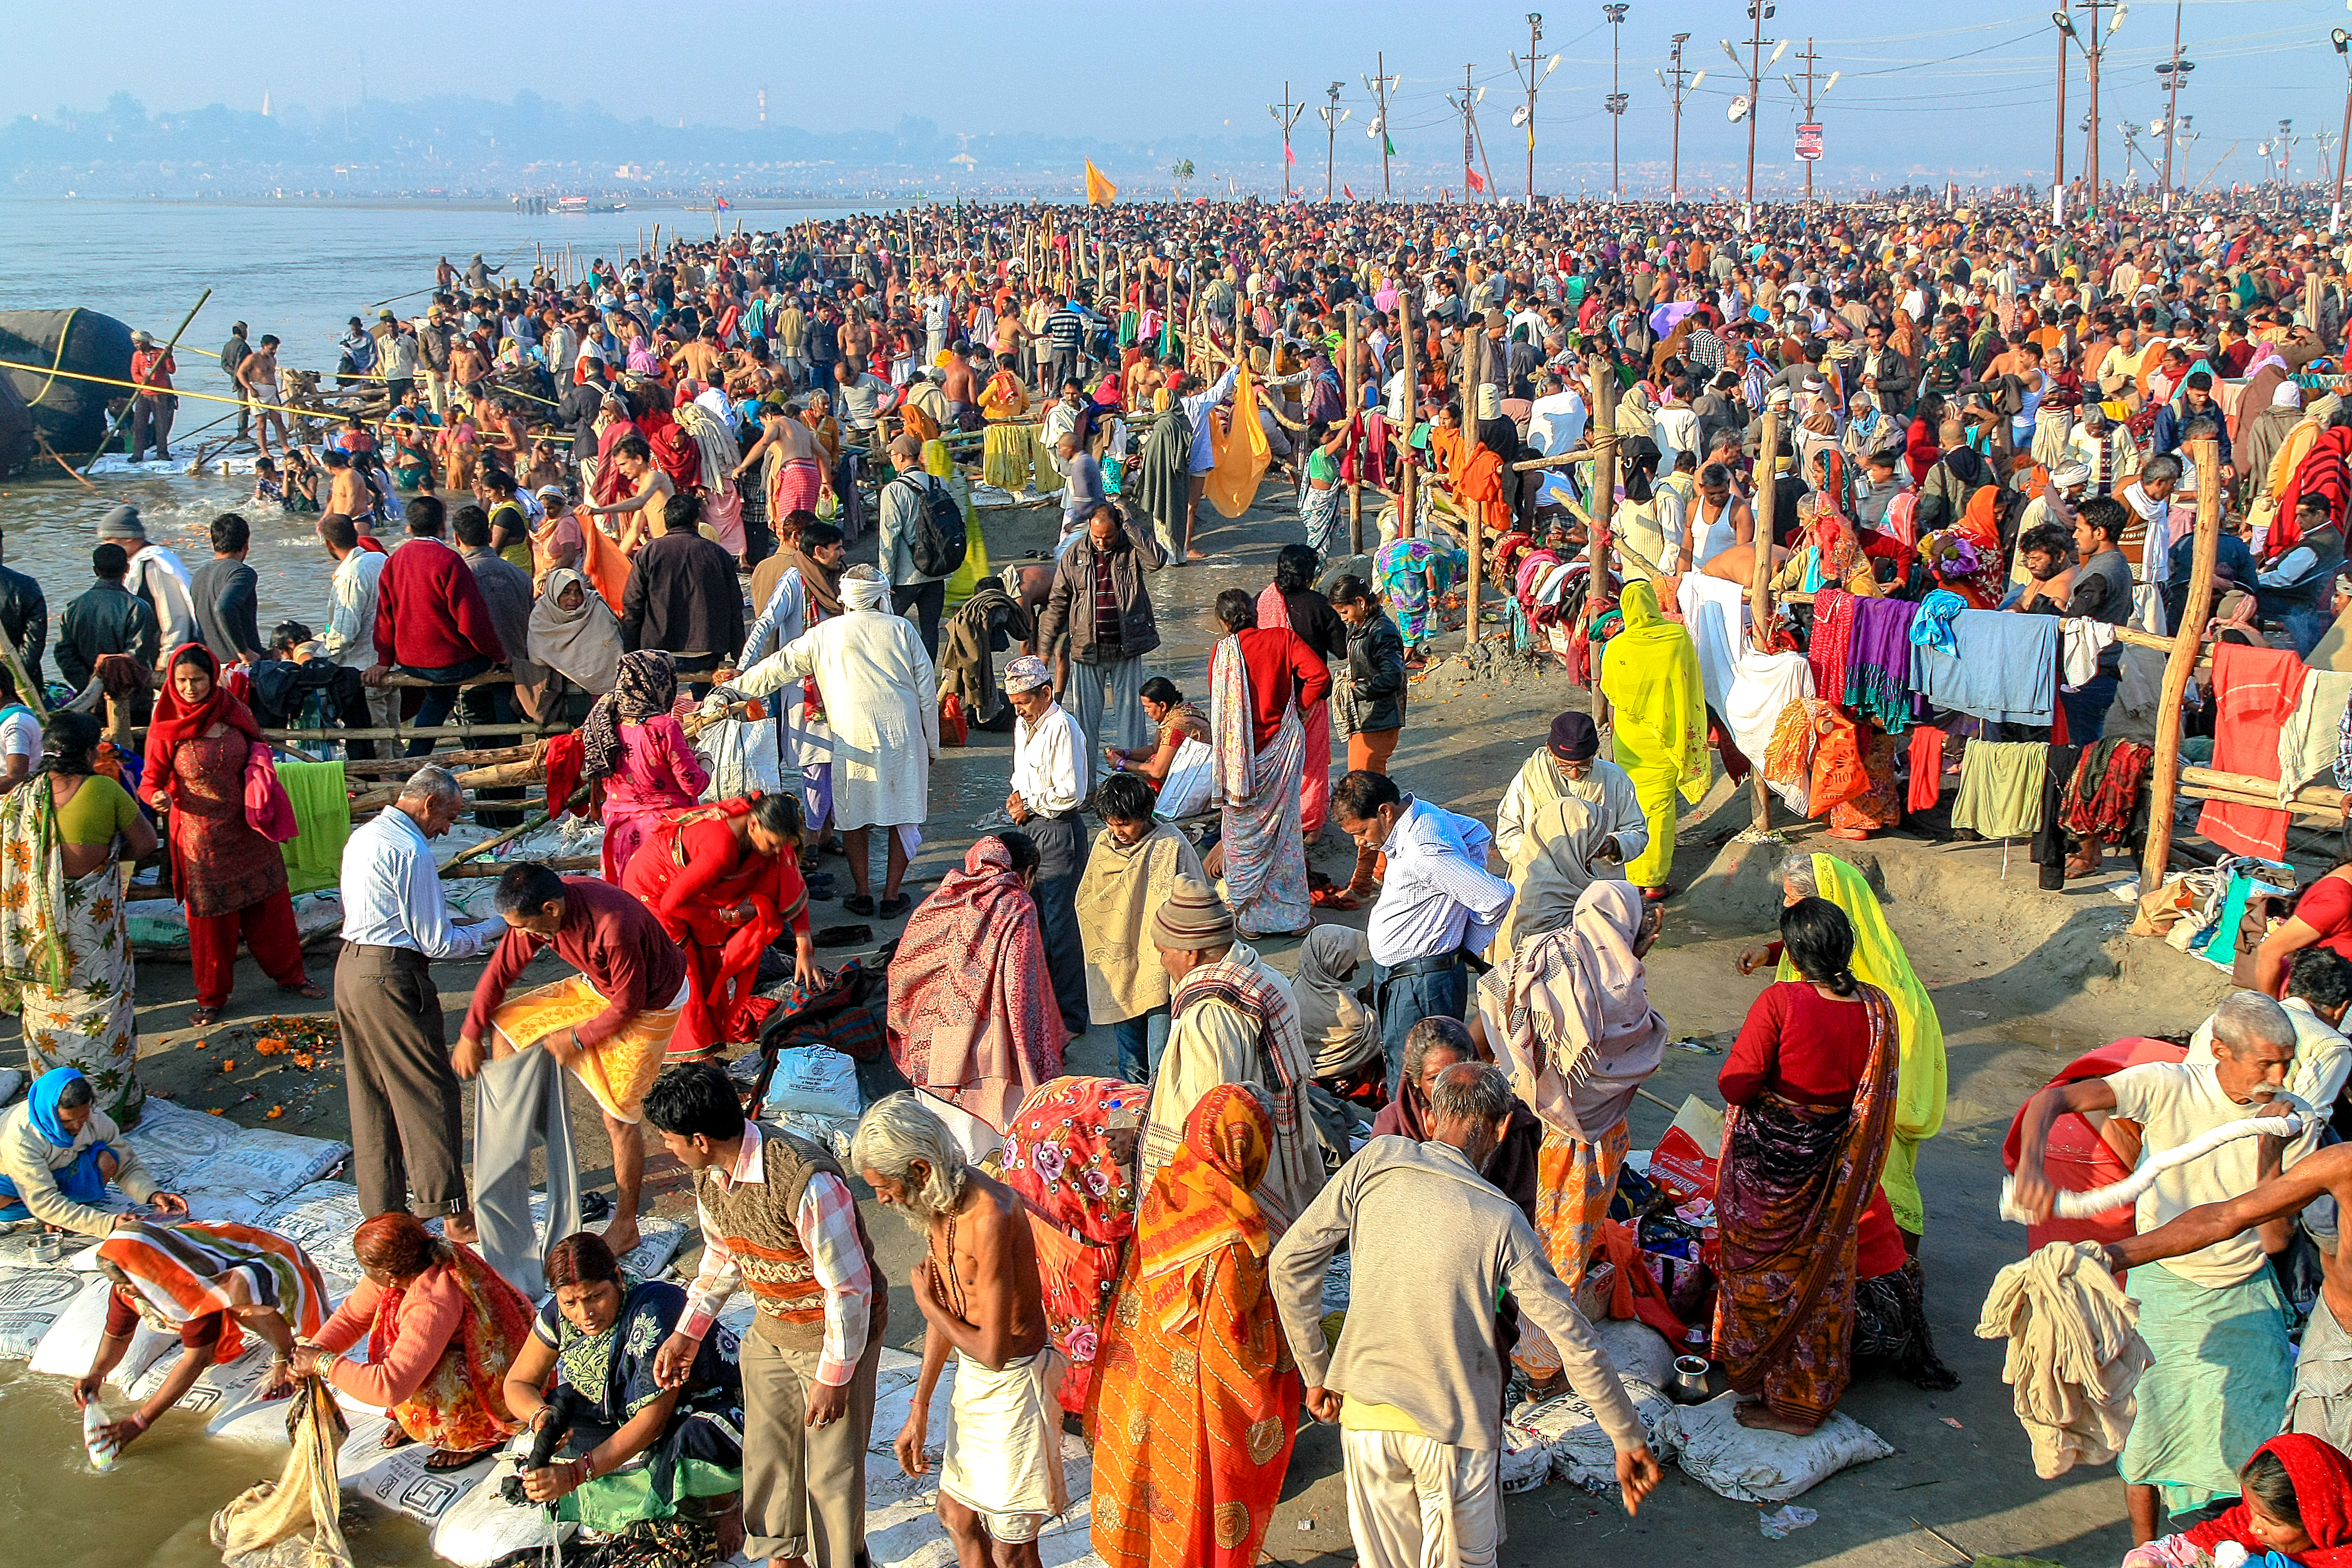 Crowds of pilgrims cross the river on temporary bridges during the Maha Kumbh Mela. Picture by AlGraChe